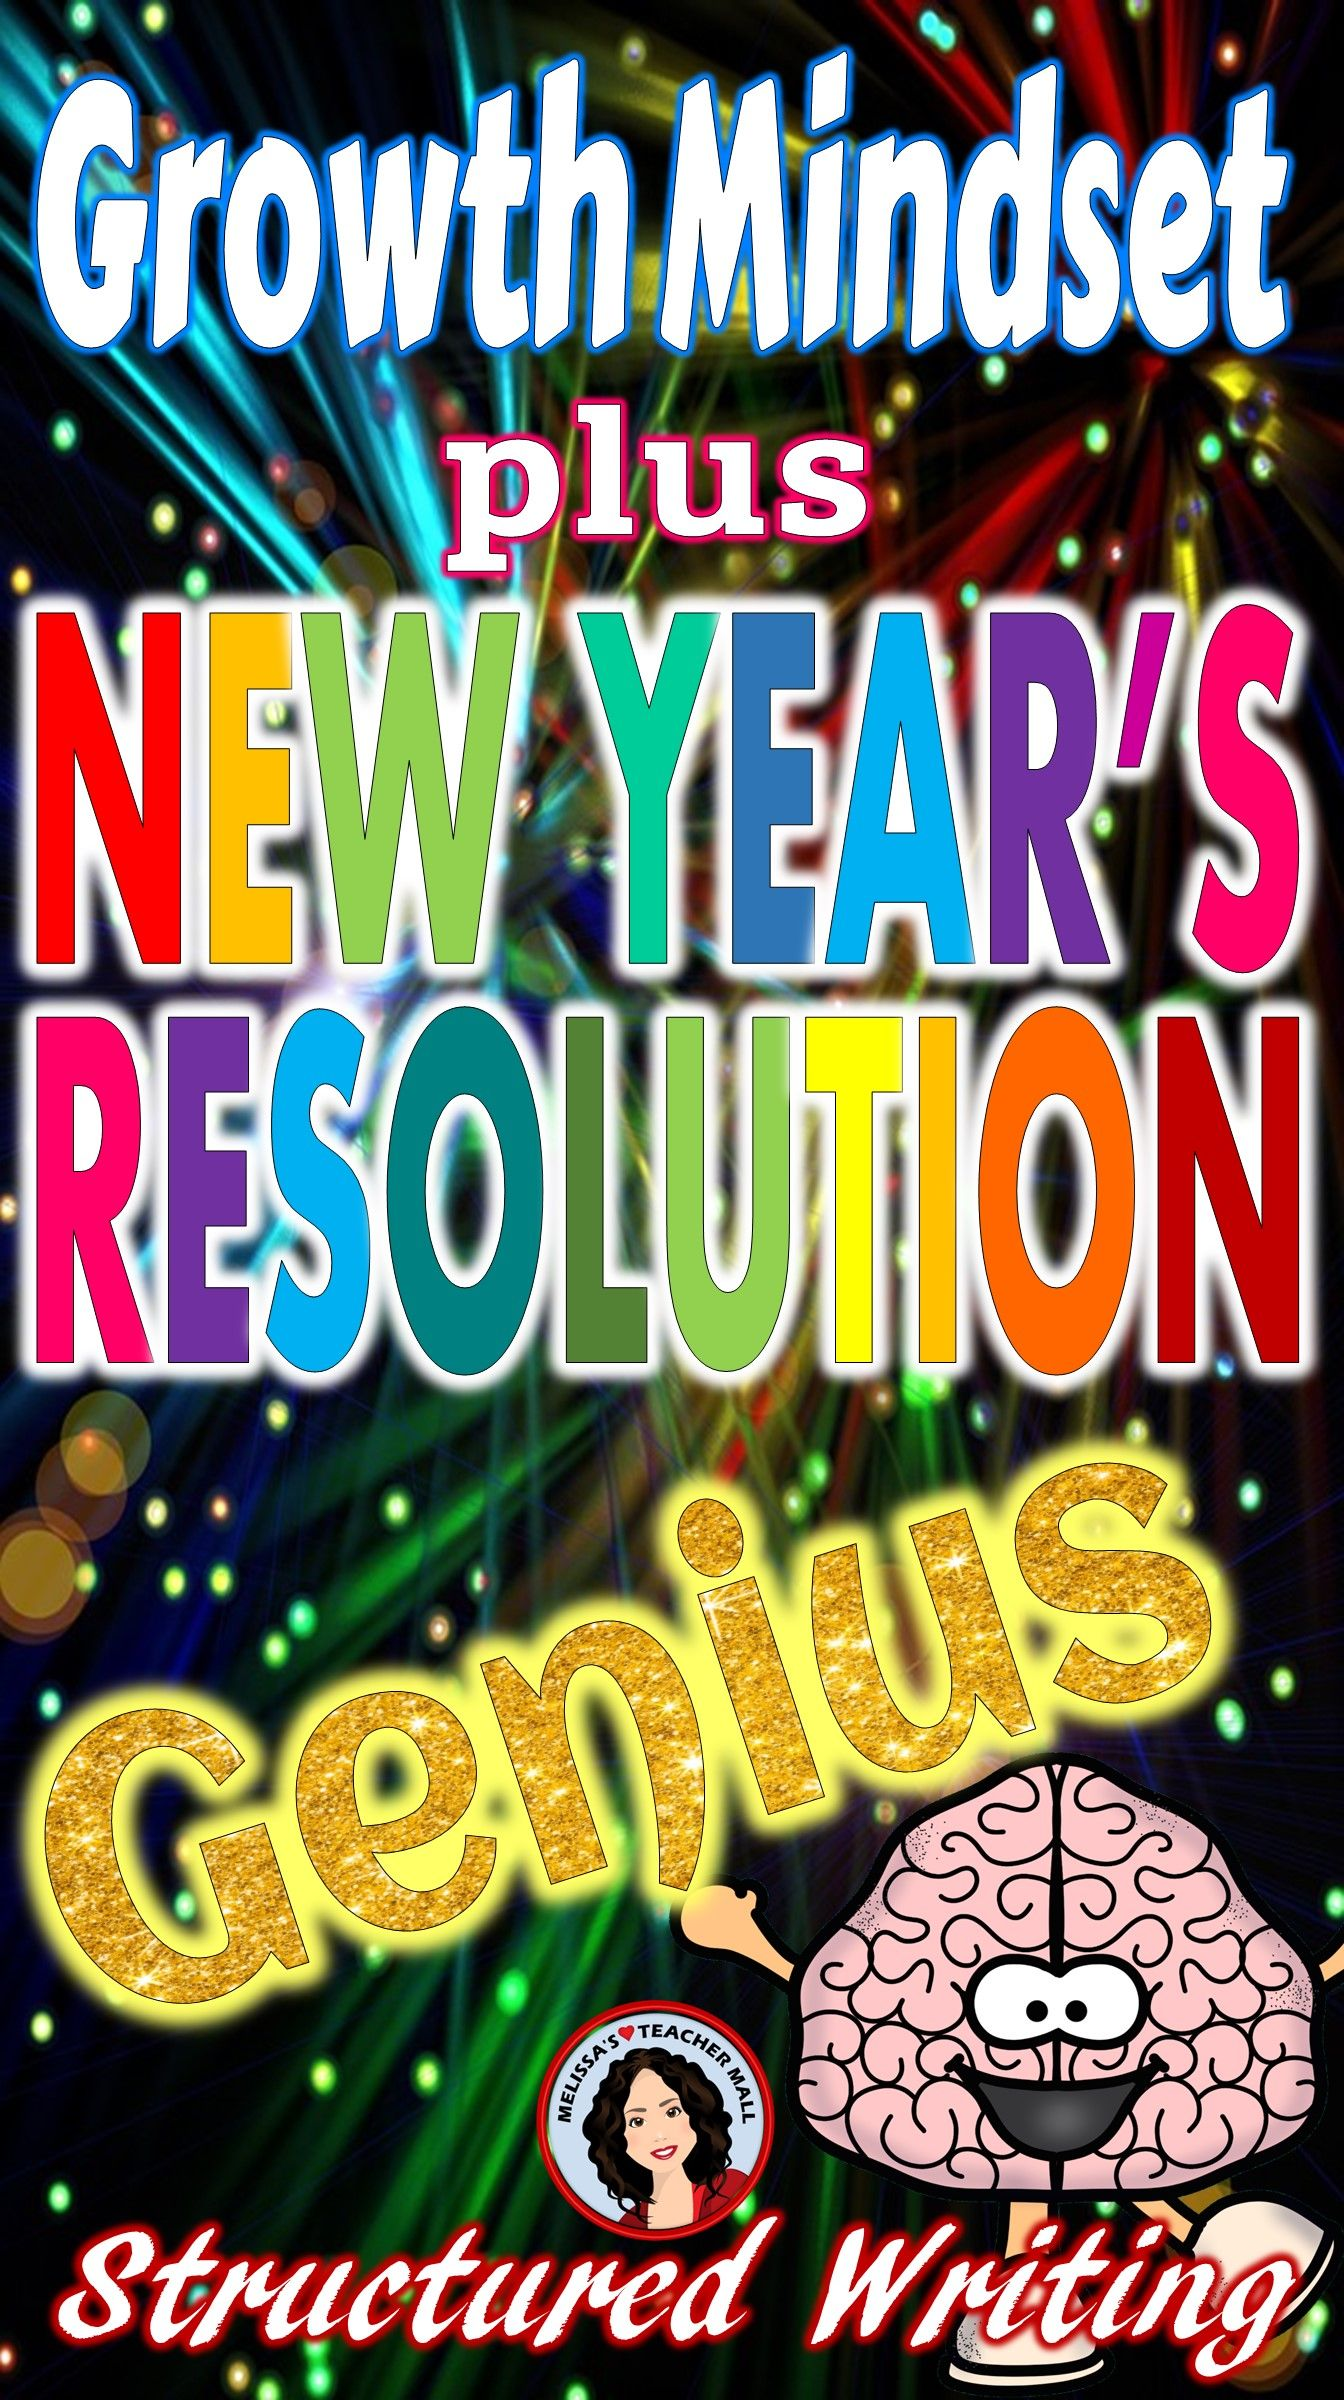 New Years Resolution Activity Using Growth Mindset